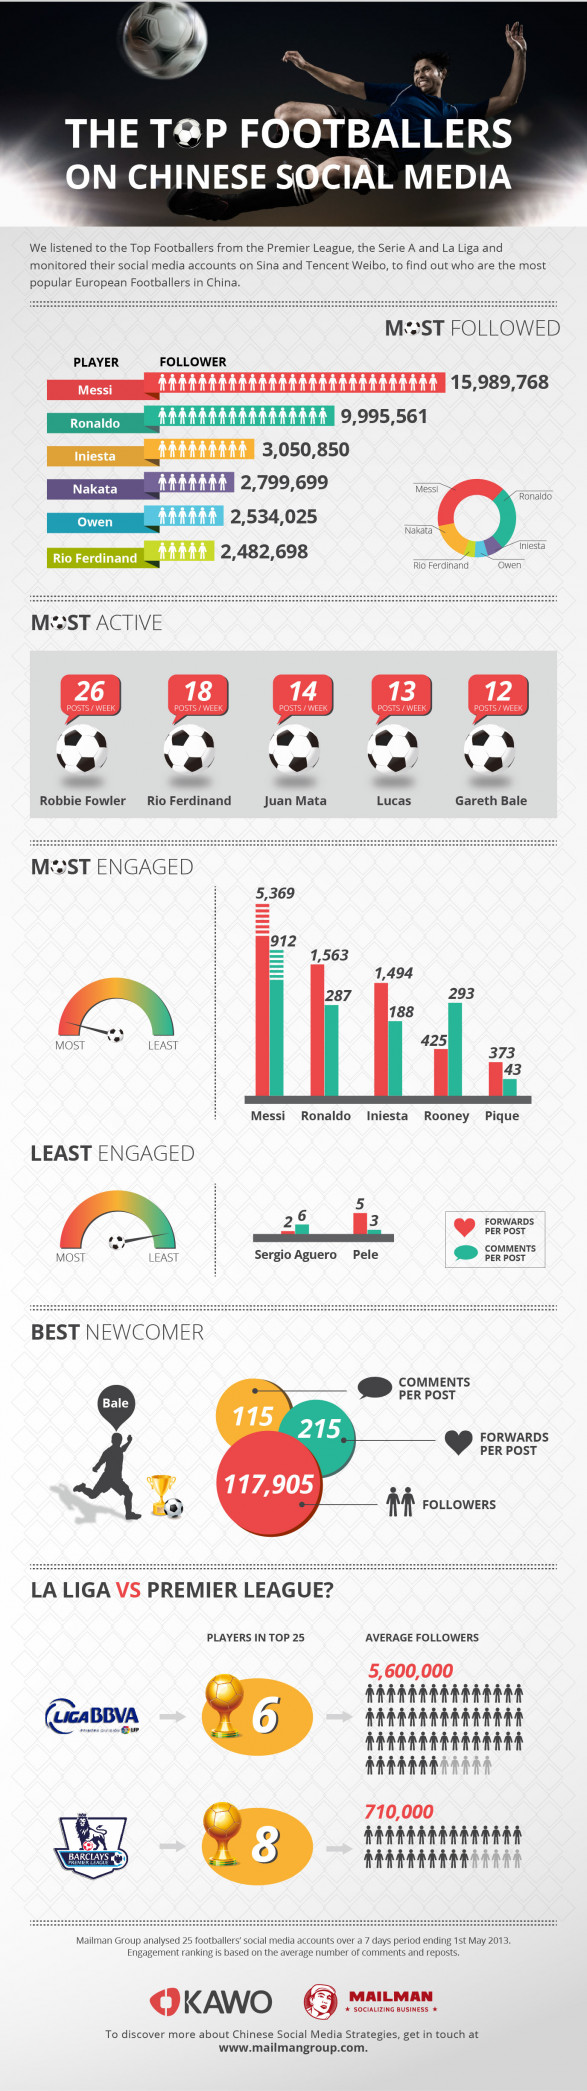 Top Footballers in Chinese Social Media